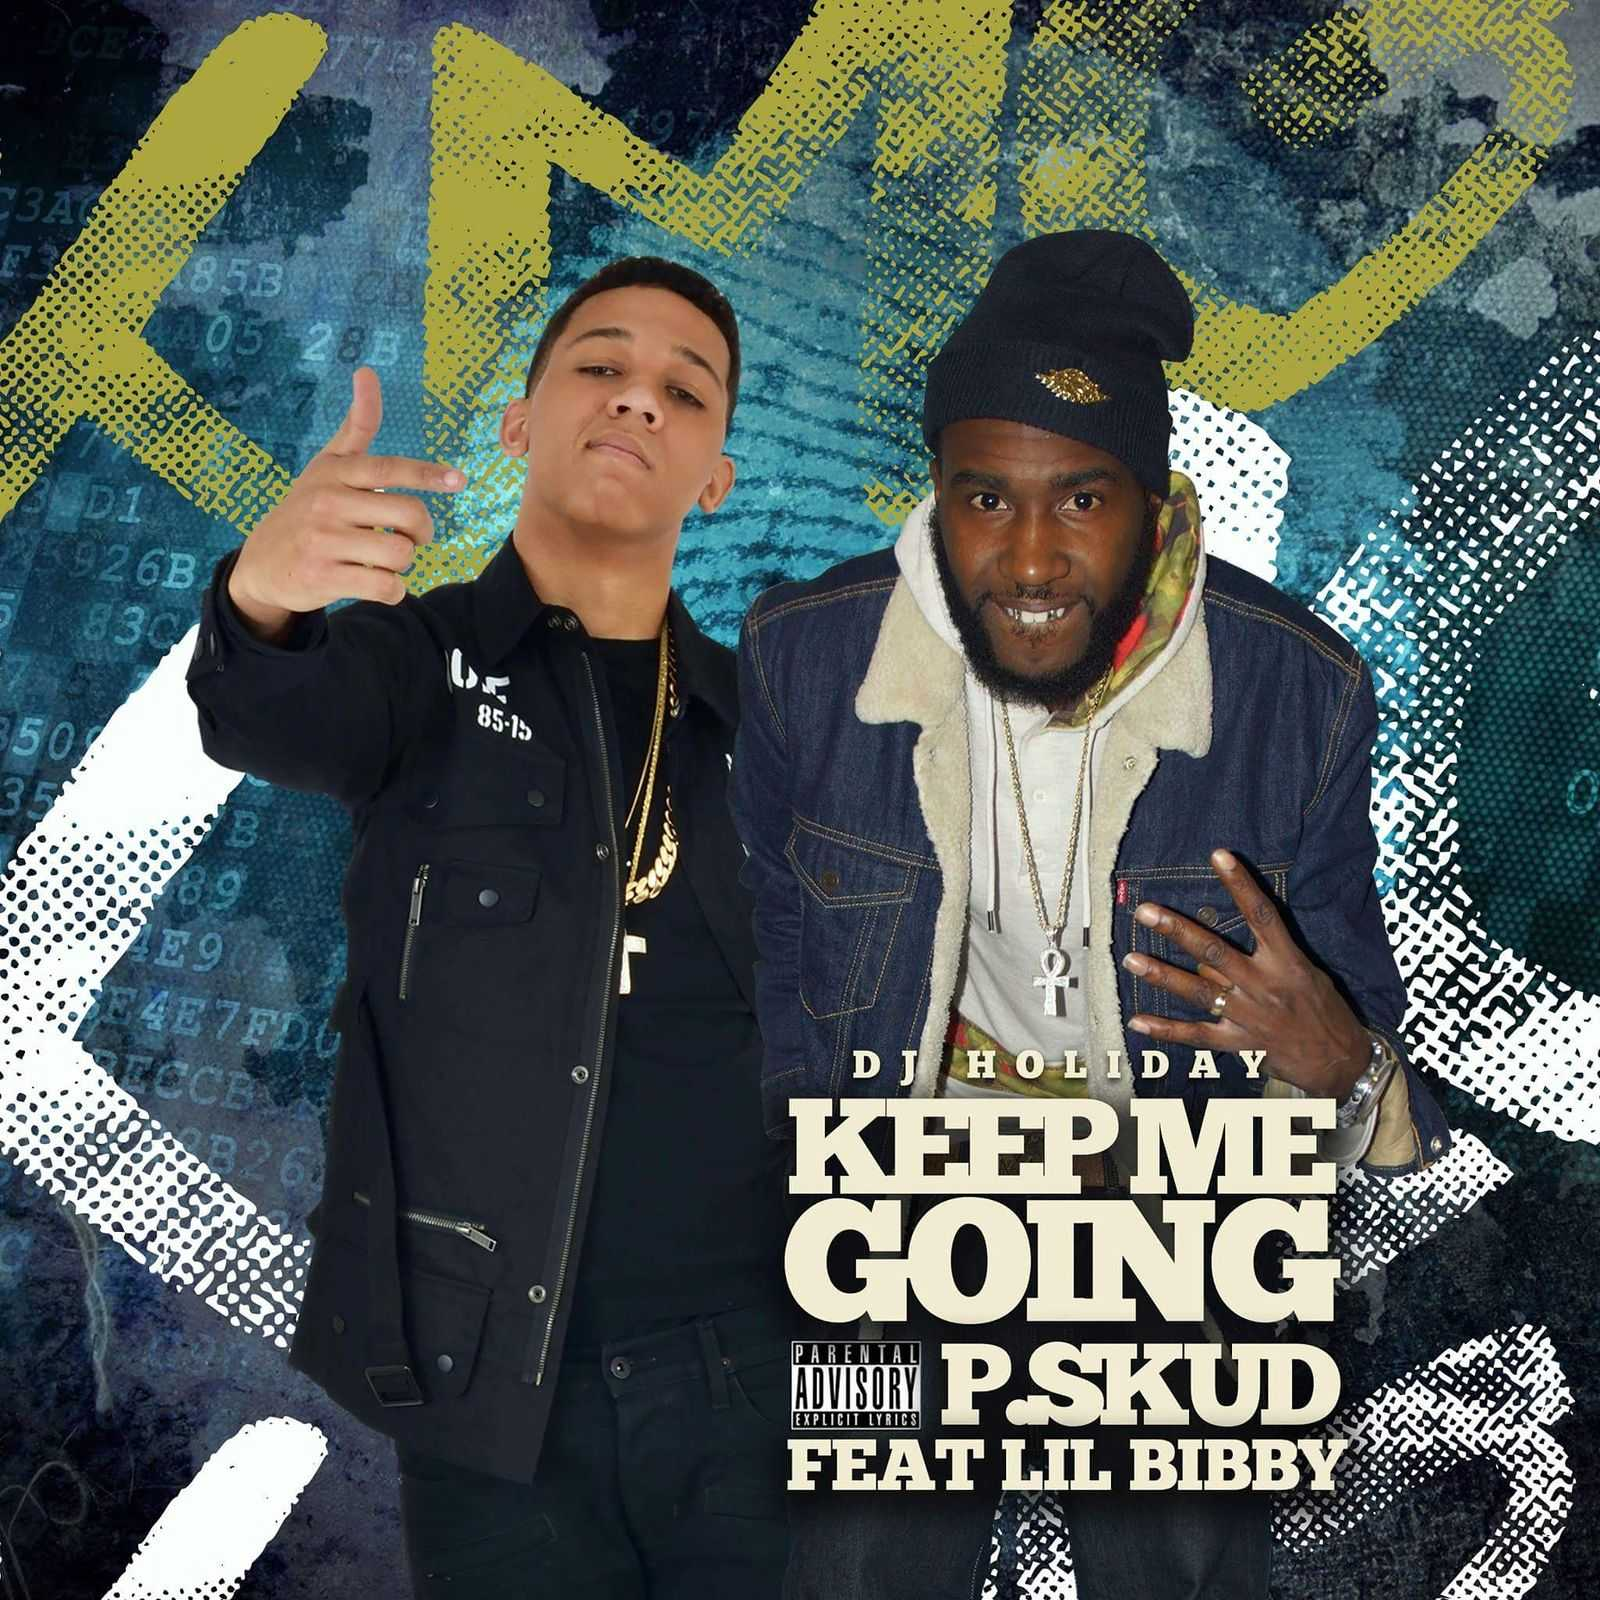 """P.Skud - """"Keep Me Goin"""" Feat. Lil Bibby [Audio]"""